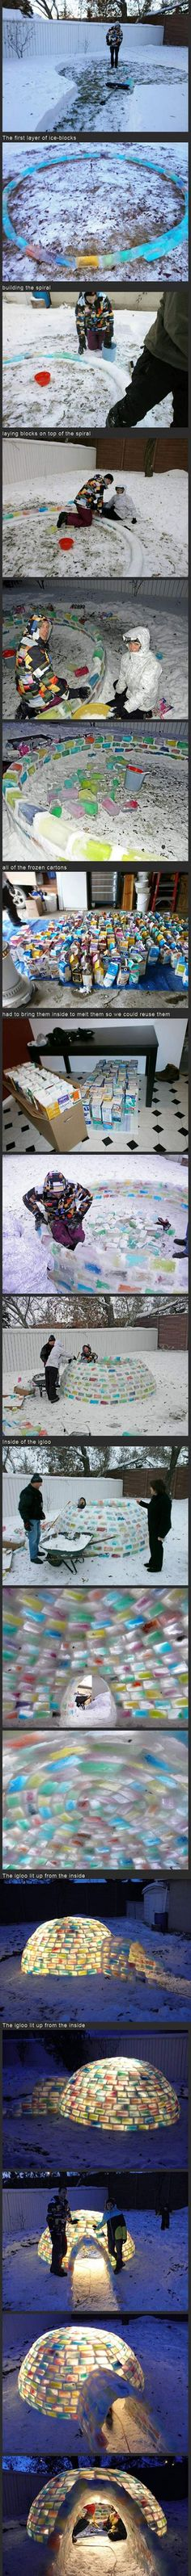 ice blocks, igloo, snow, milk cartons, awesom, stained glass, bucket lists, kid, cold weather